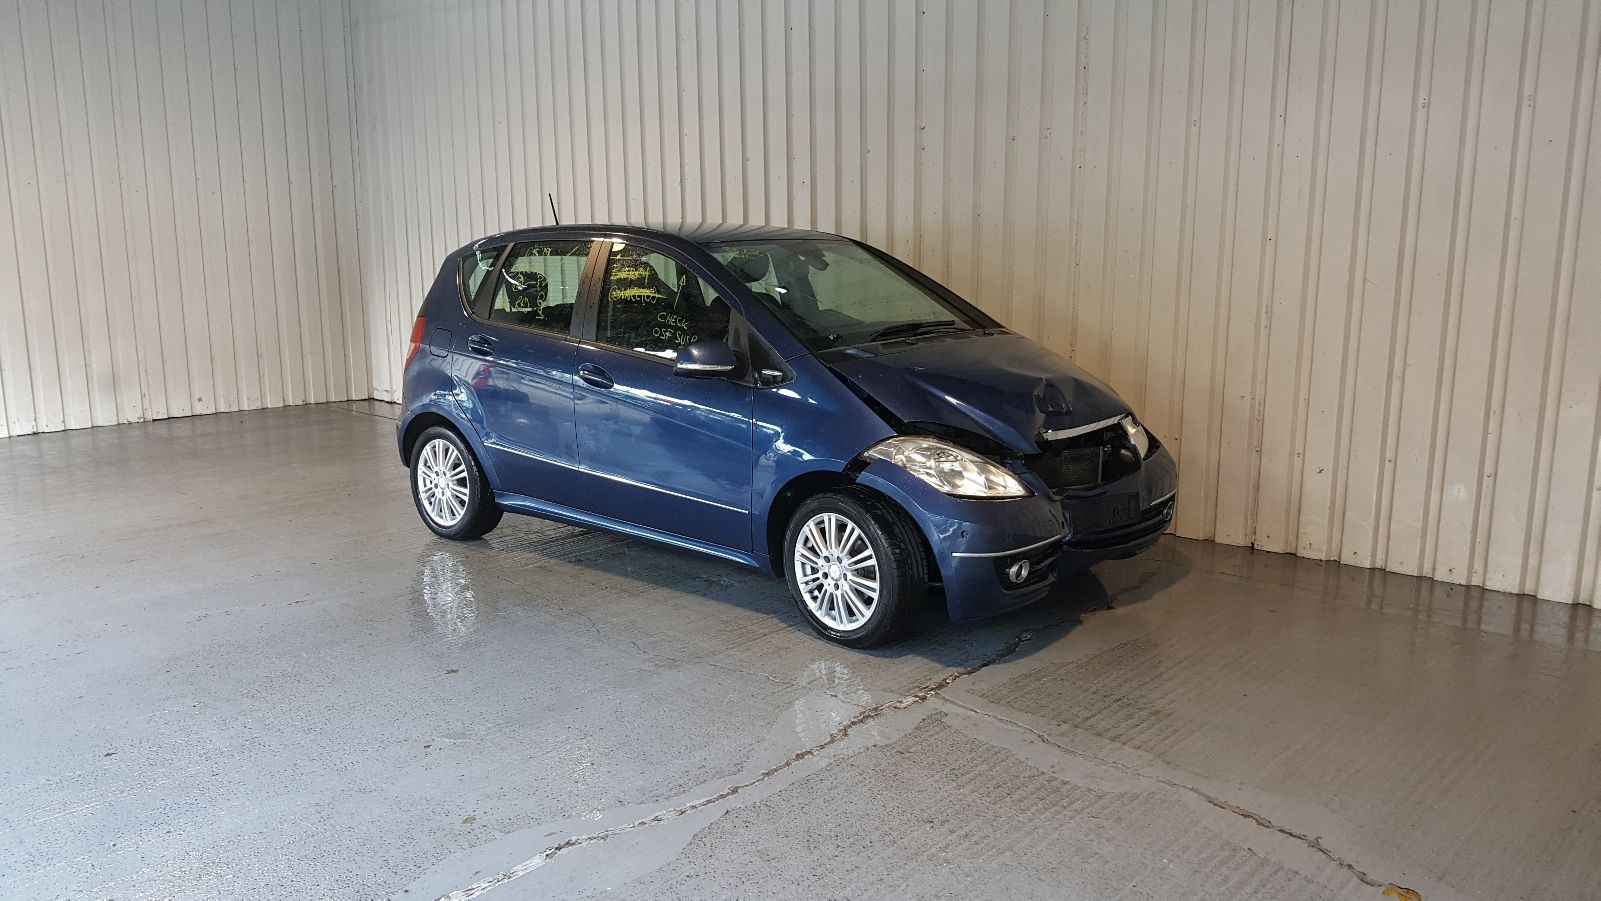 Image for a 2009 Mercedes A Class 1.7 Petrol M266.940 Engine